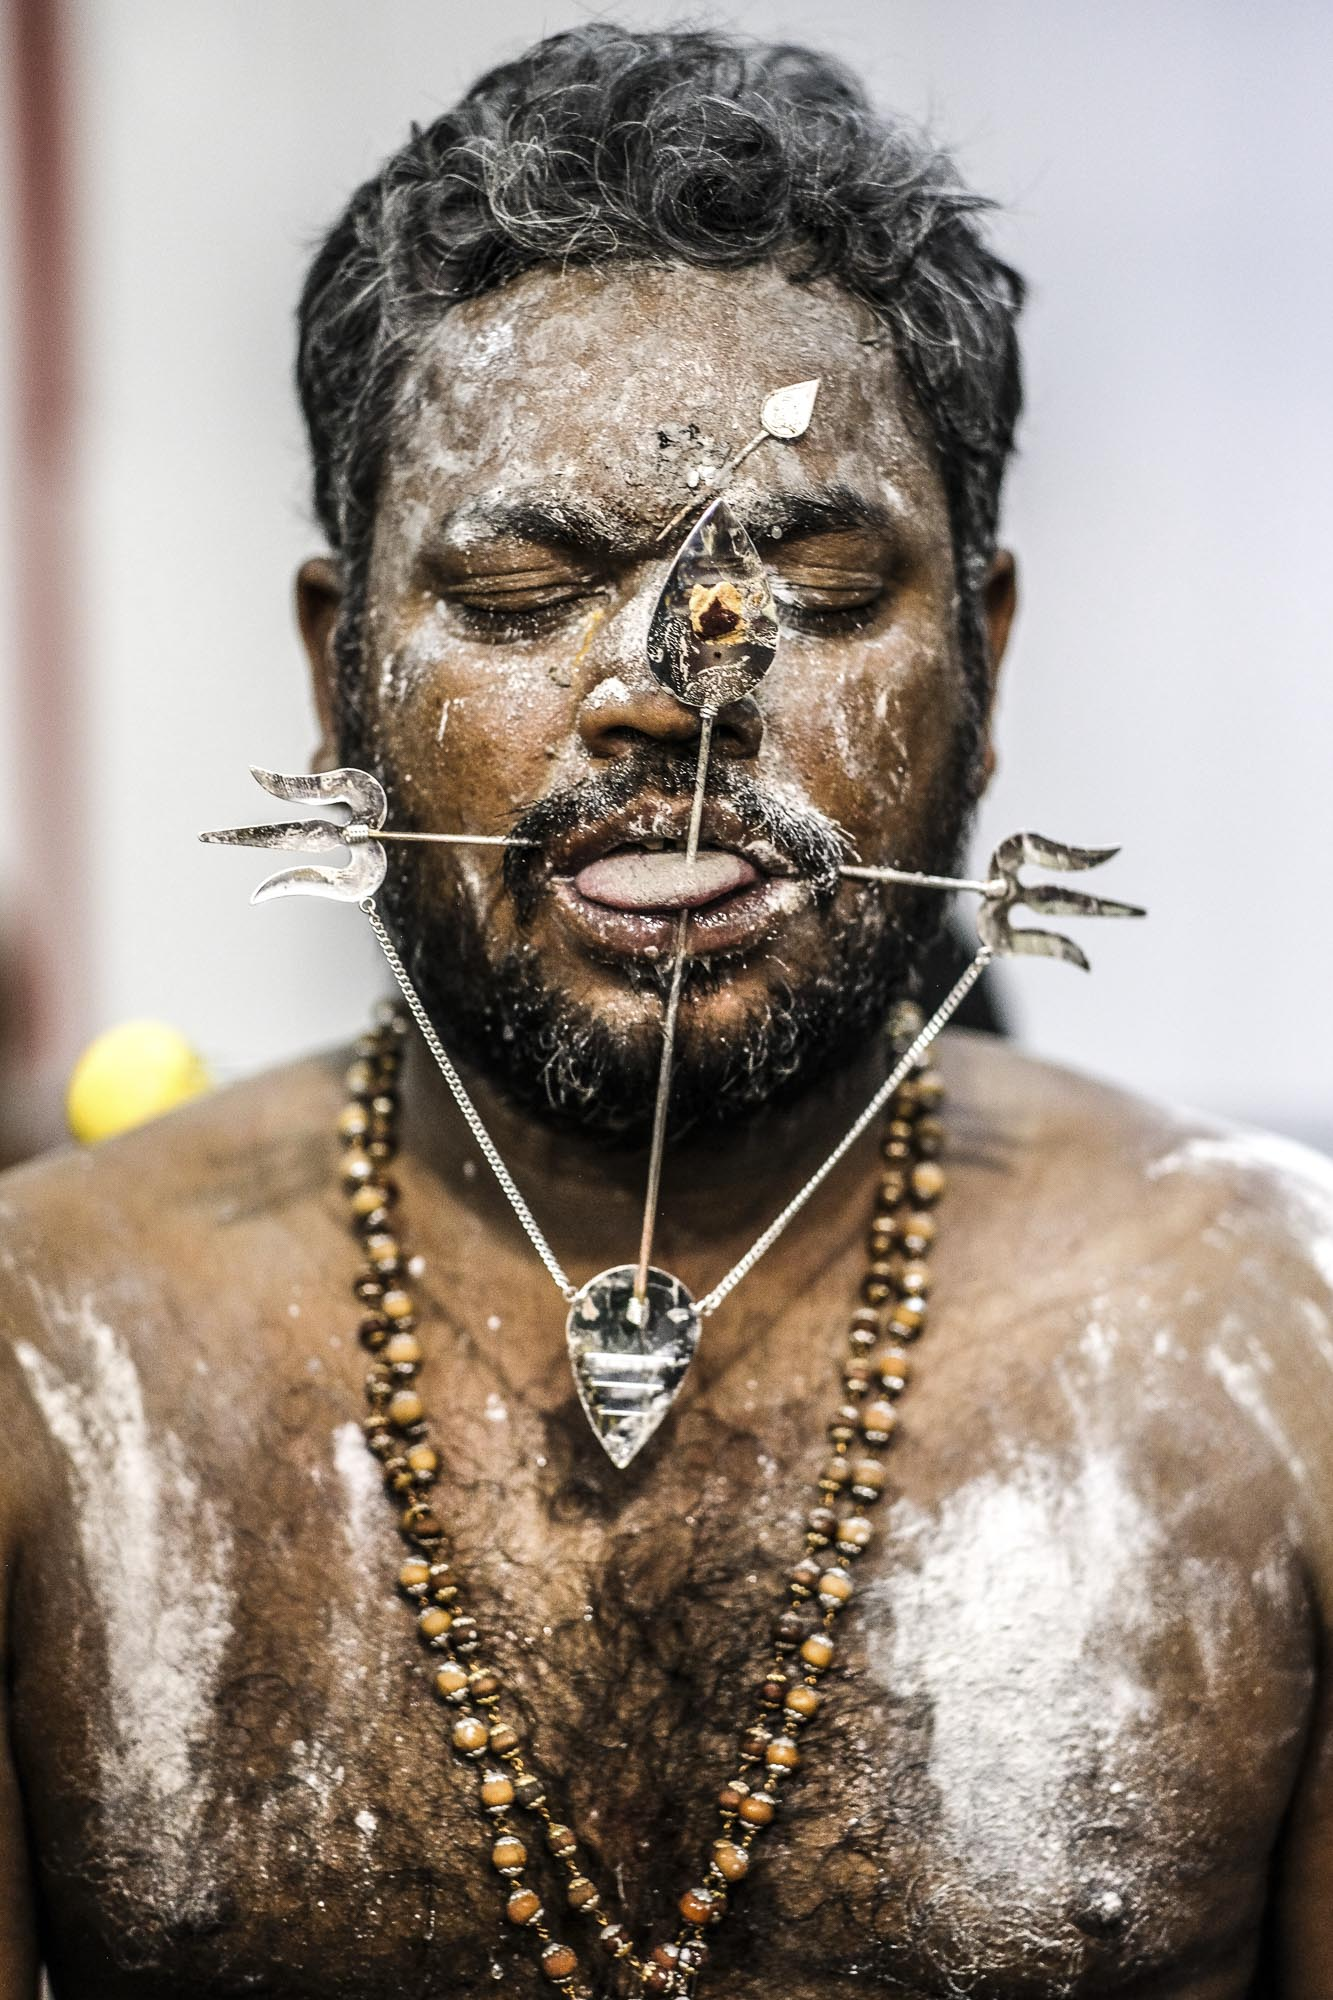 tongue piercing white poder Little India Thaipusam Festival hindu Singapore photography jose jeuland documentary event